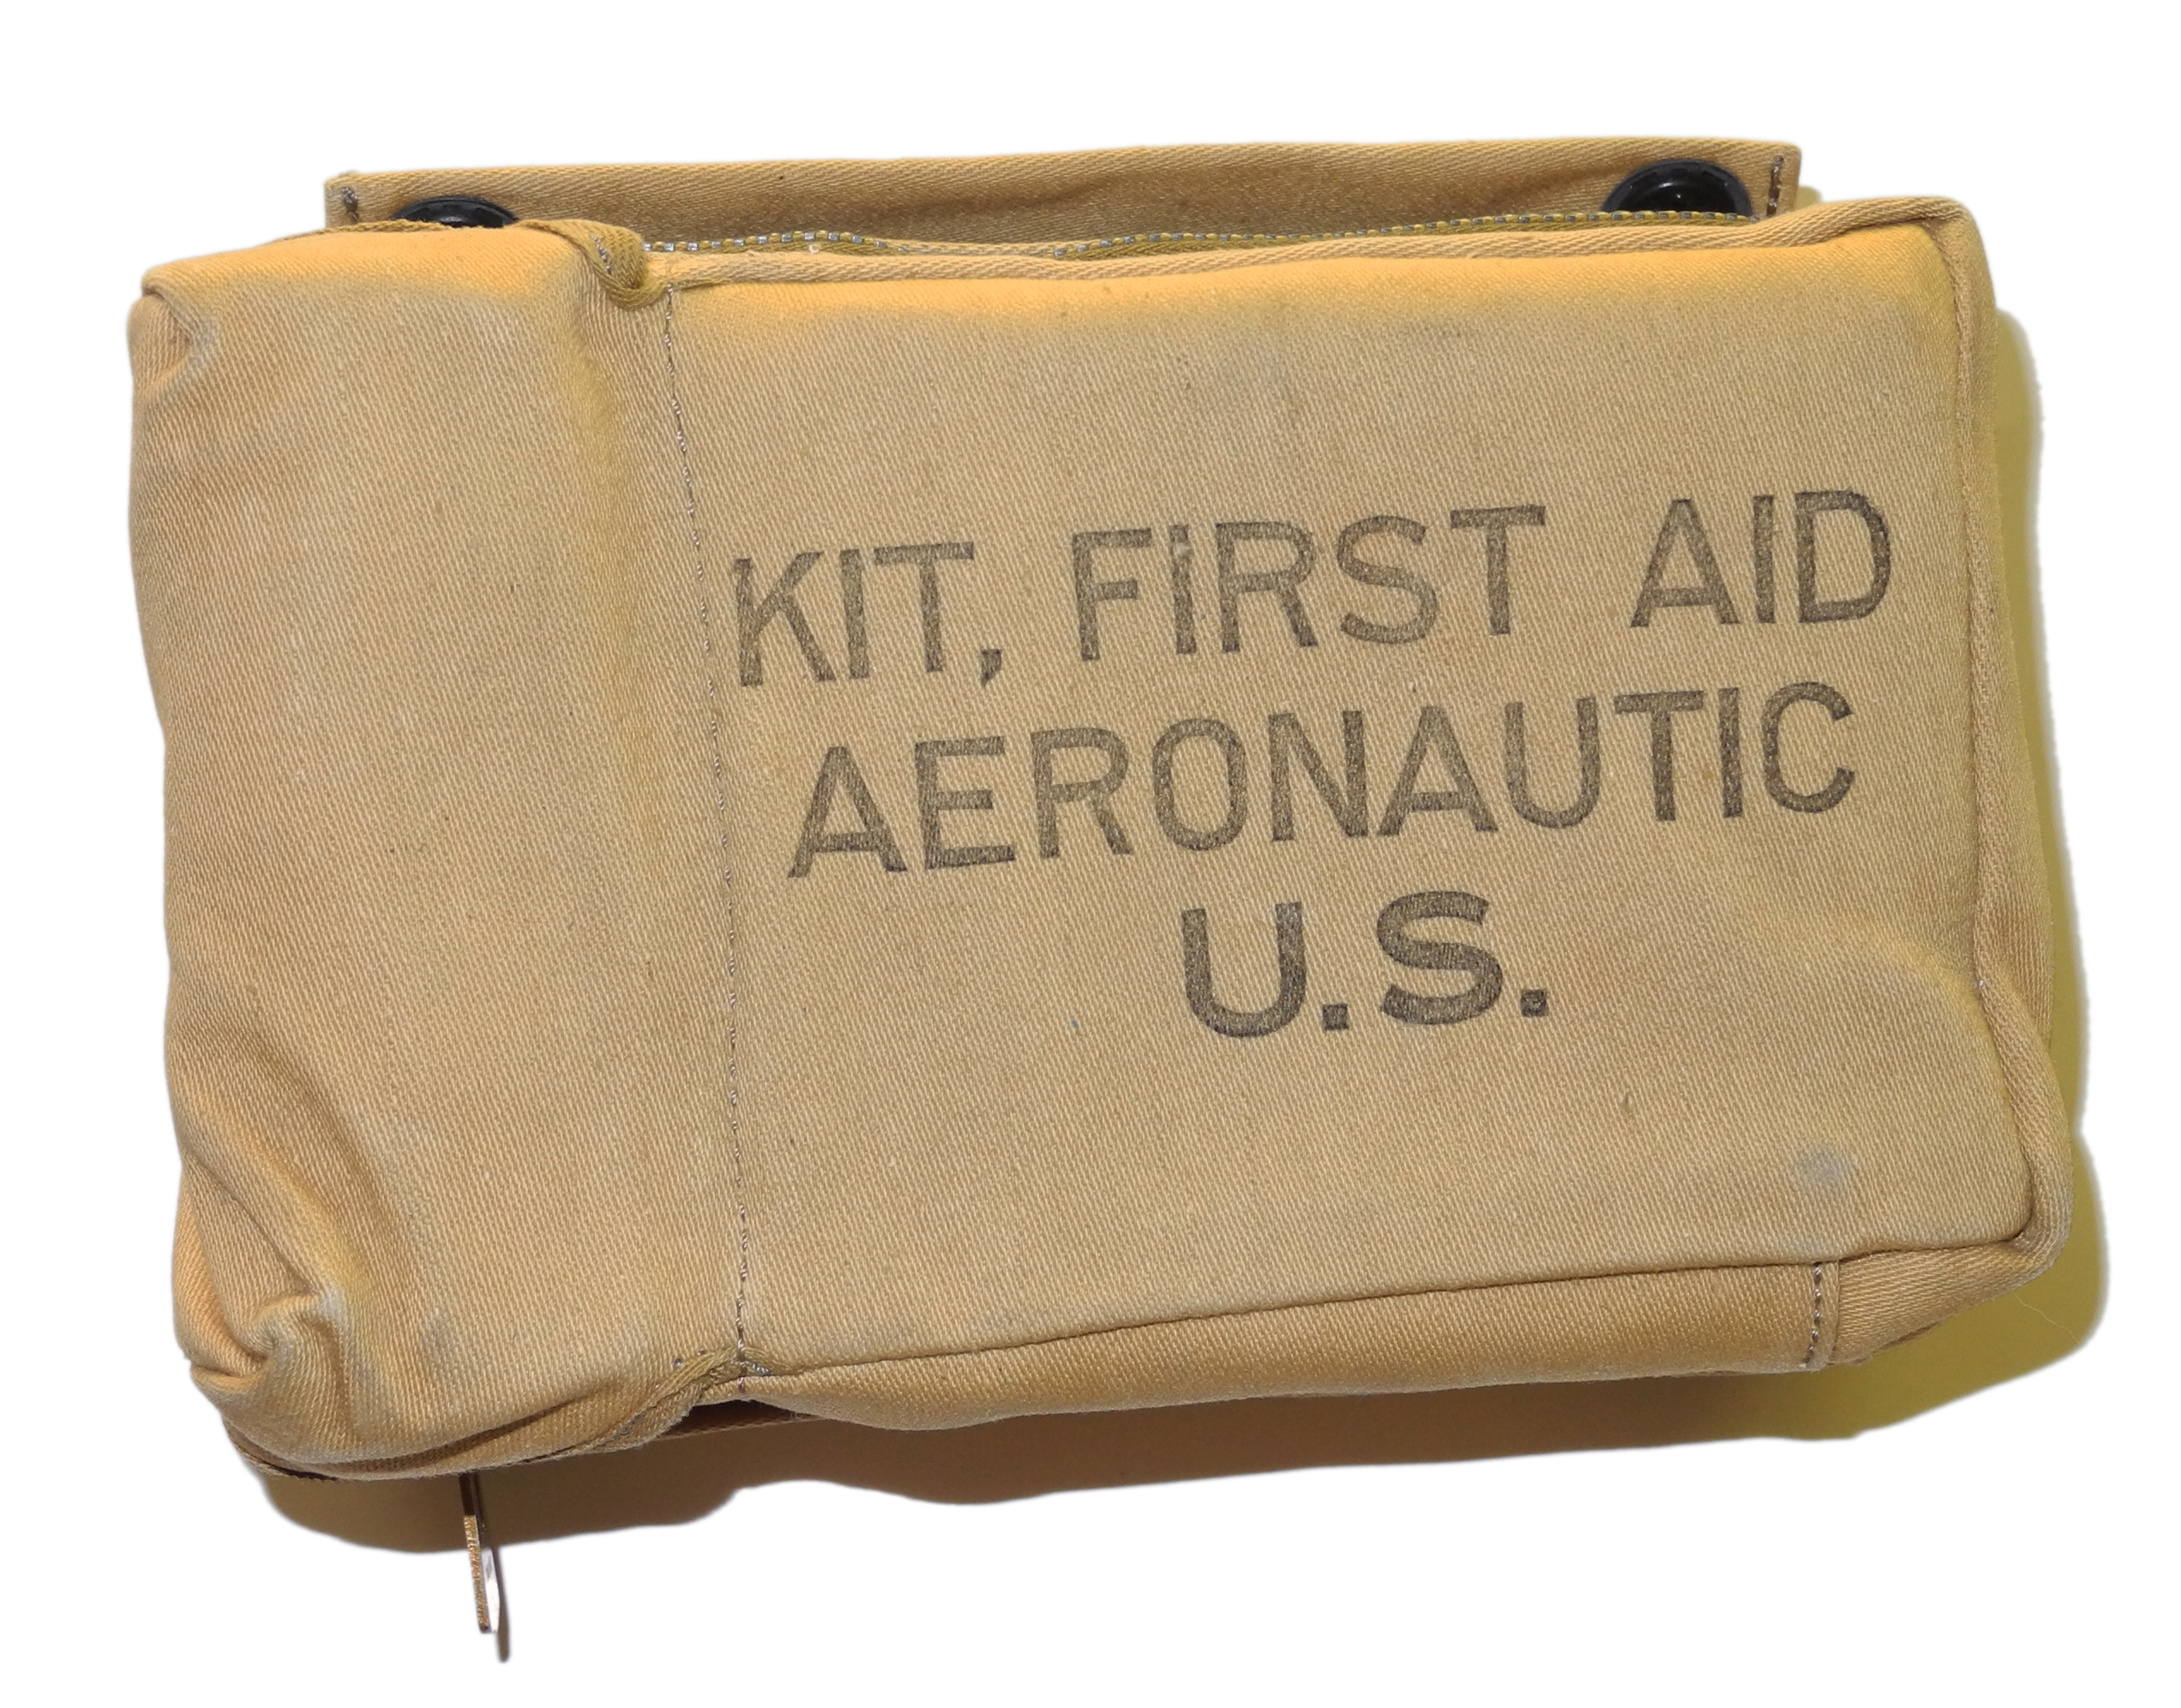 AAF aircraft first aid kit